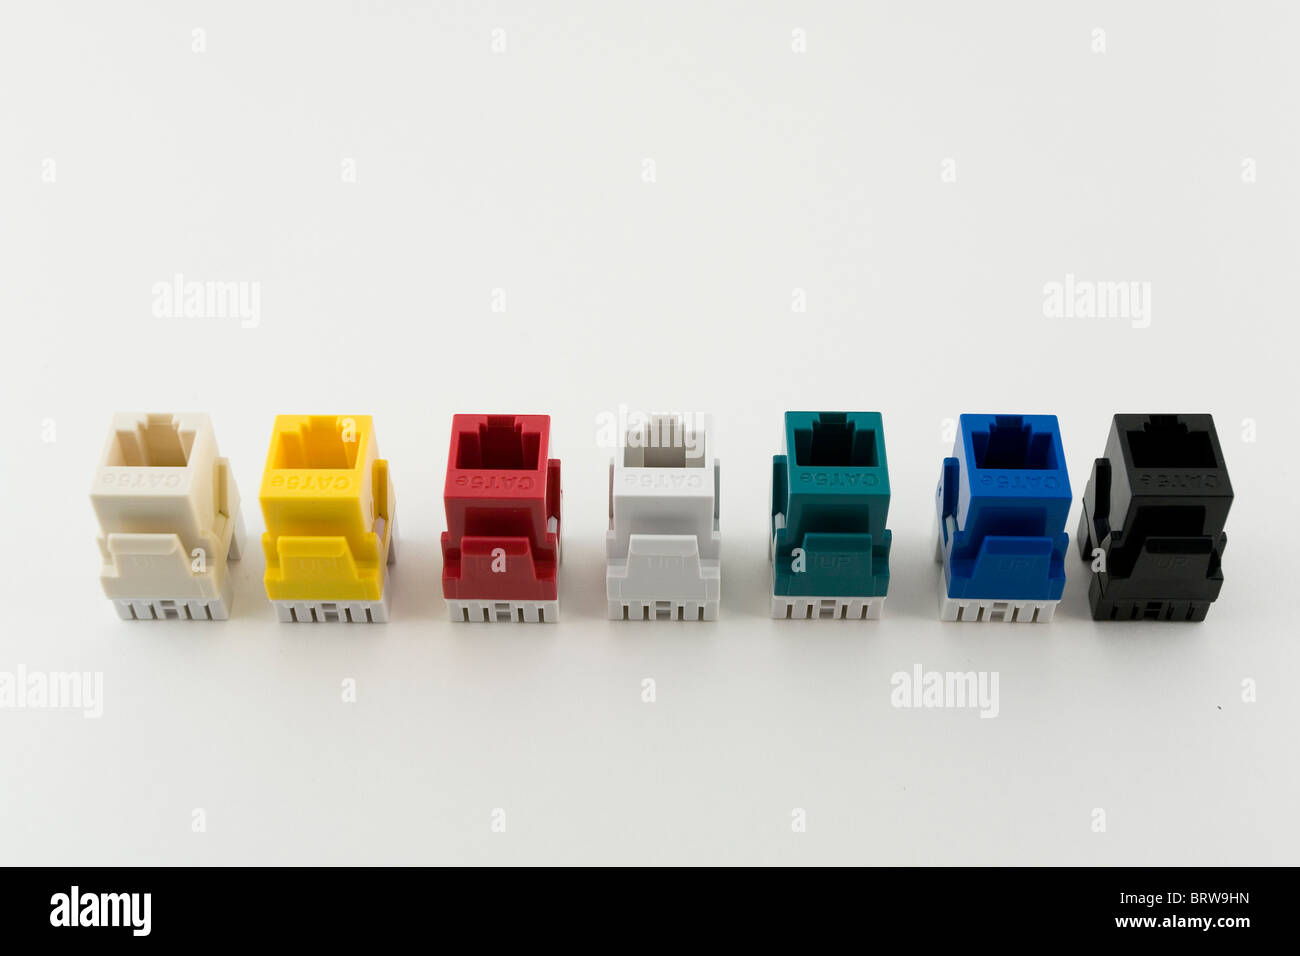 Modules, connectors, cables, plug in, color, macro, close up, advertising, catalogue - Stock Image